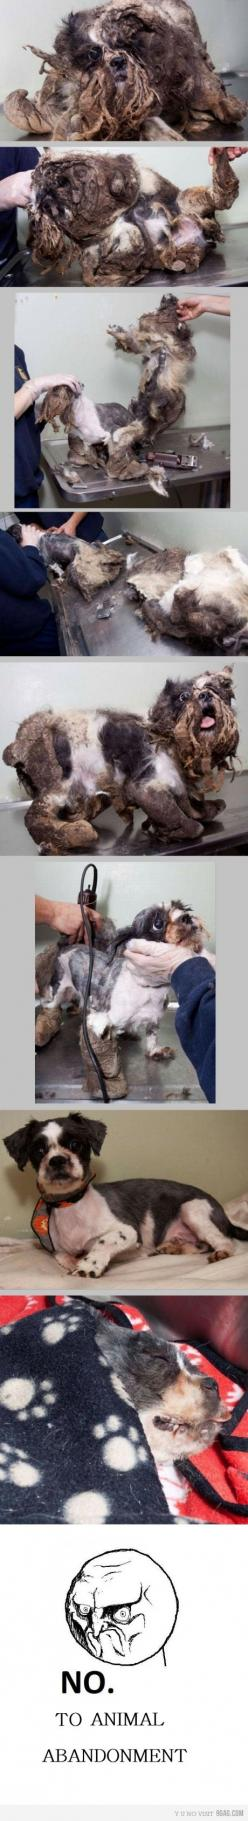 Animal abuse.: Animal Rescue, Help Animals, Animal Cruelty, Animal Abuse, Animal Abandonment, So Sad, Poor Baby